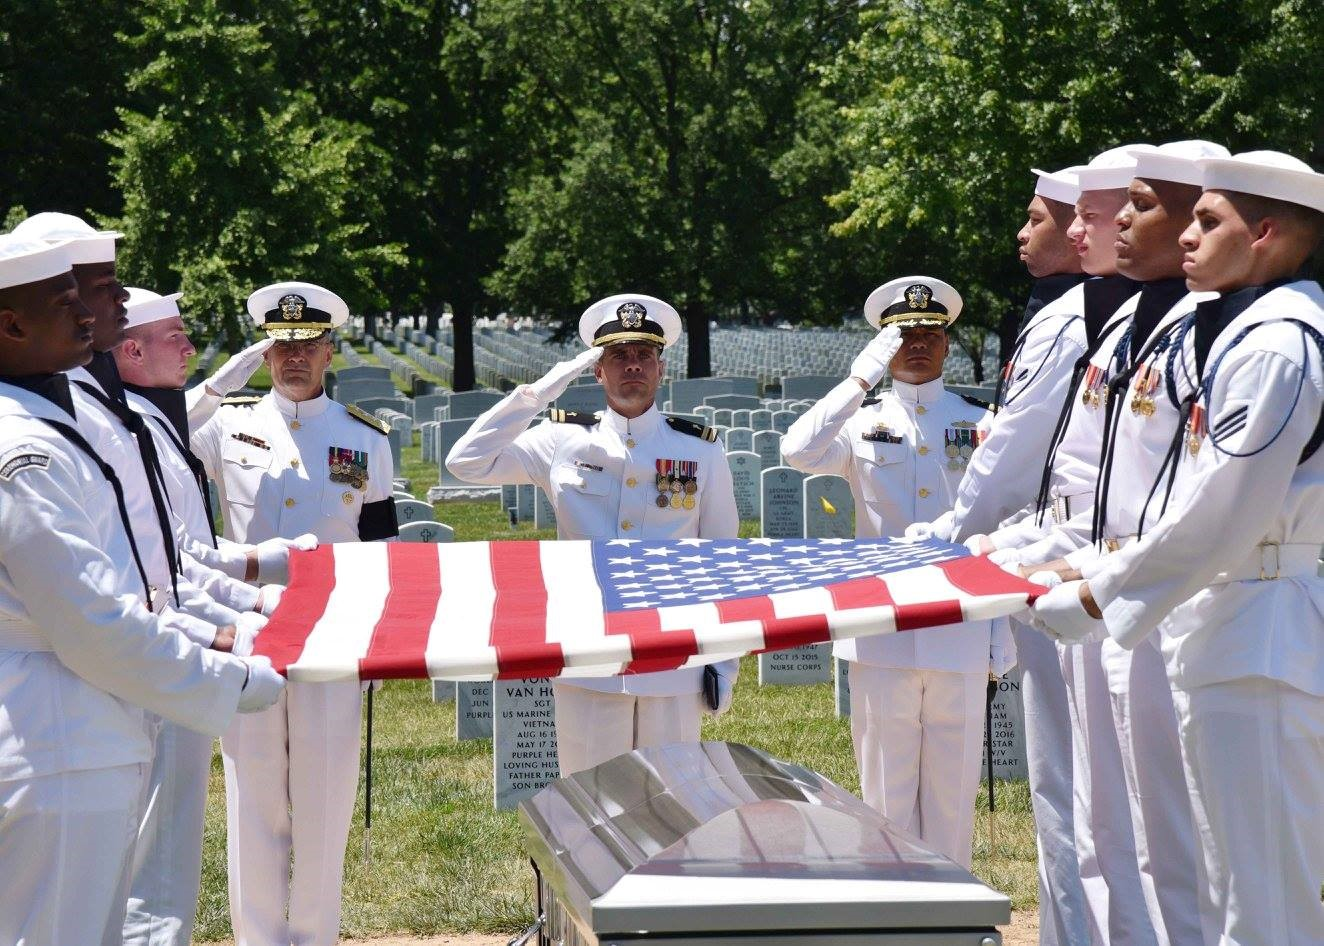 Funeral service for a sailor killed during the Battle of Tarawa (WWII) and accounted for in 2016 Official DPAA photo (2017)